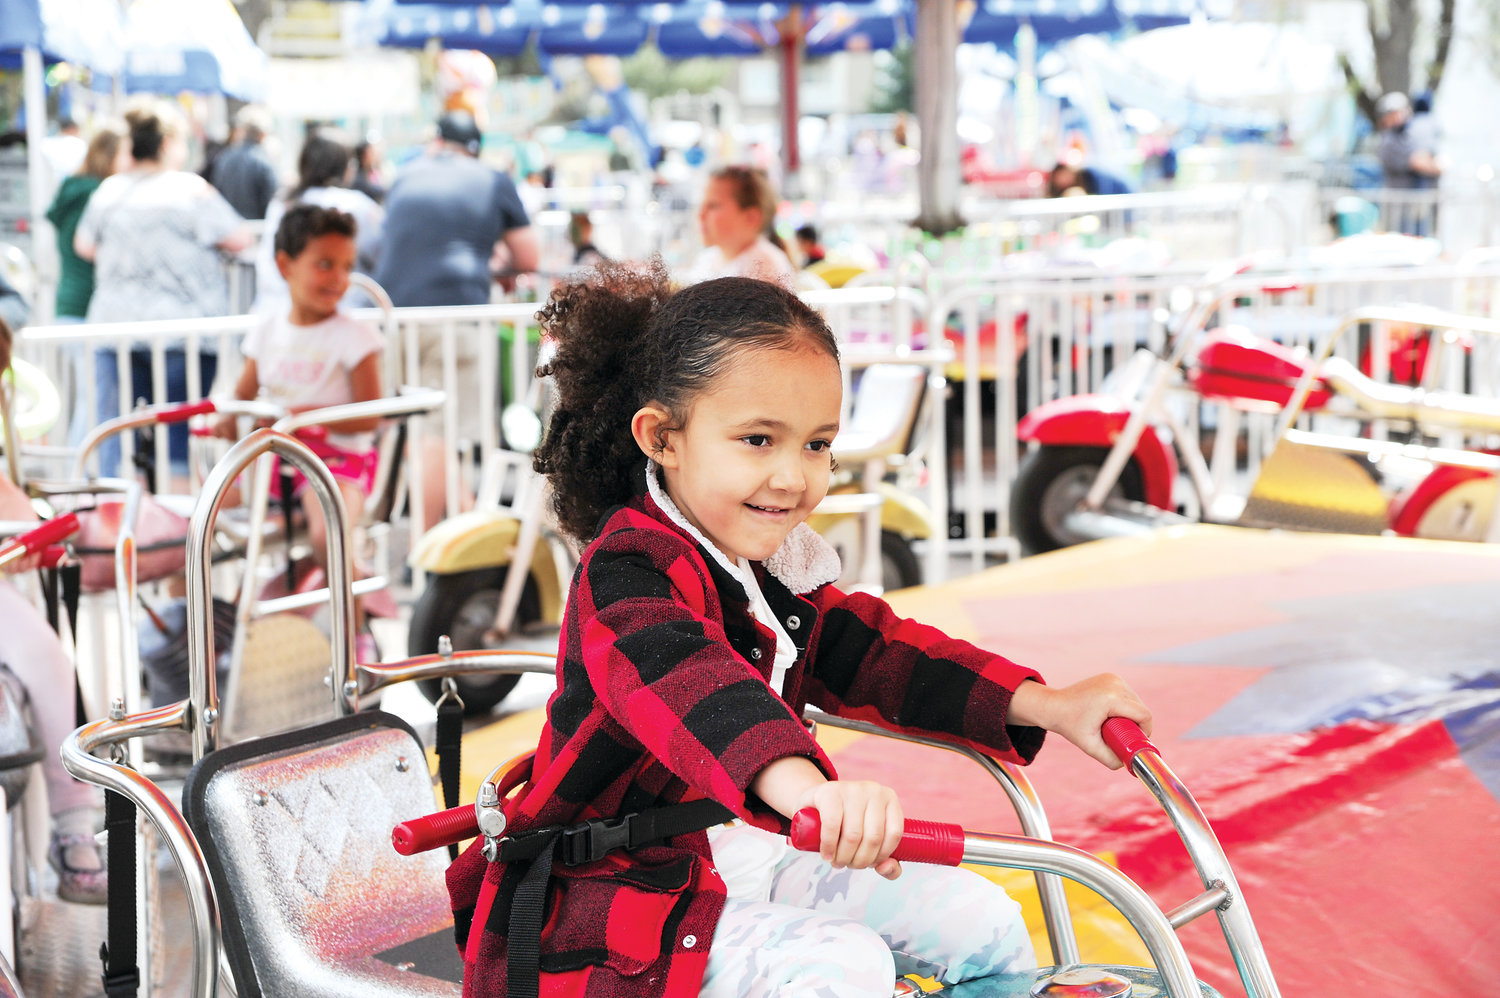 Leilani Monroes, 4, of Northglenn, prepares to depart on a children's motorcycle ride, which was part of this year's annual Food Truck Carnival, at the Northglenn Community Center.